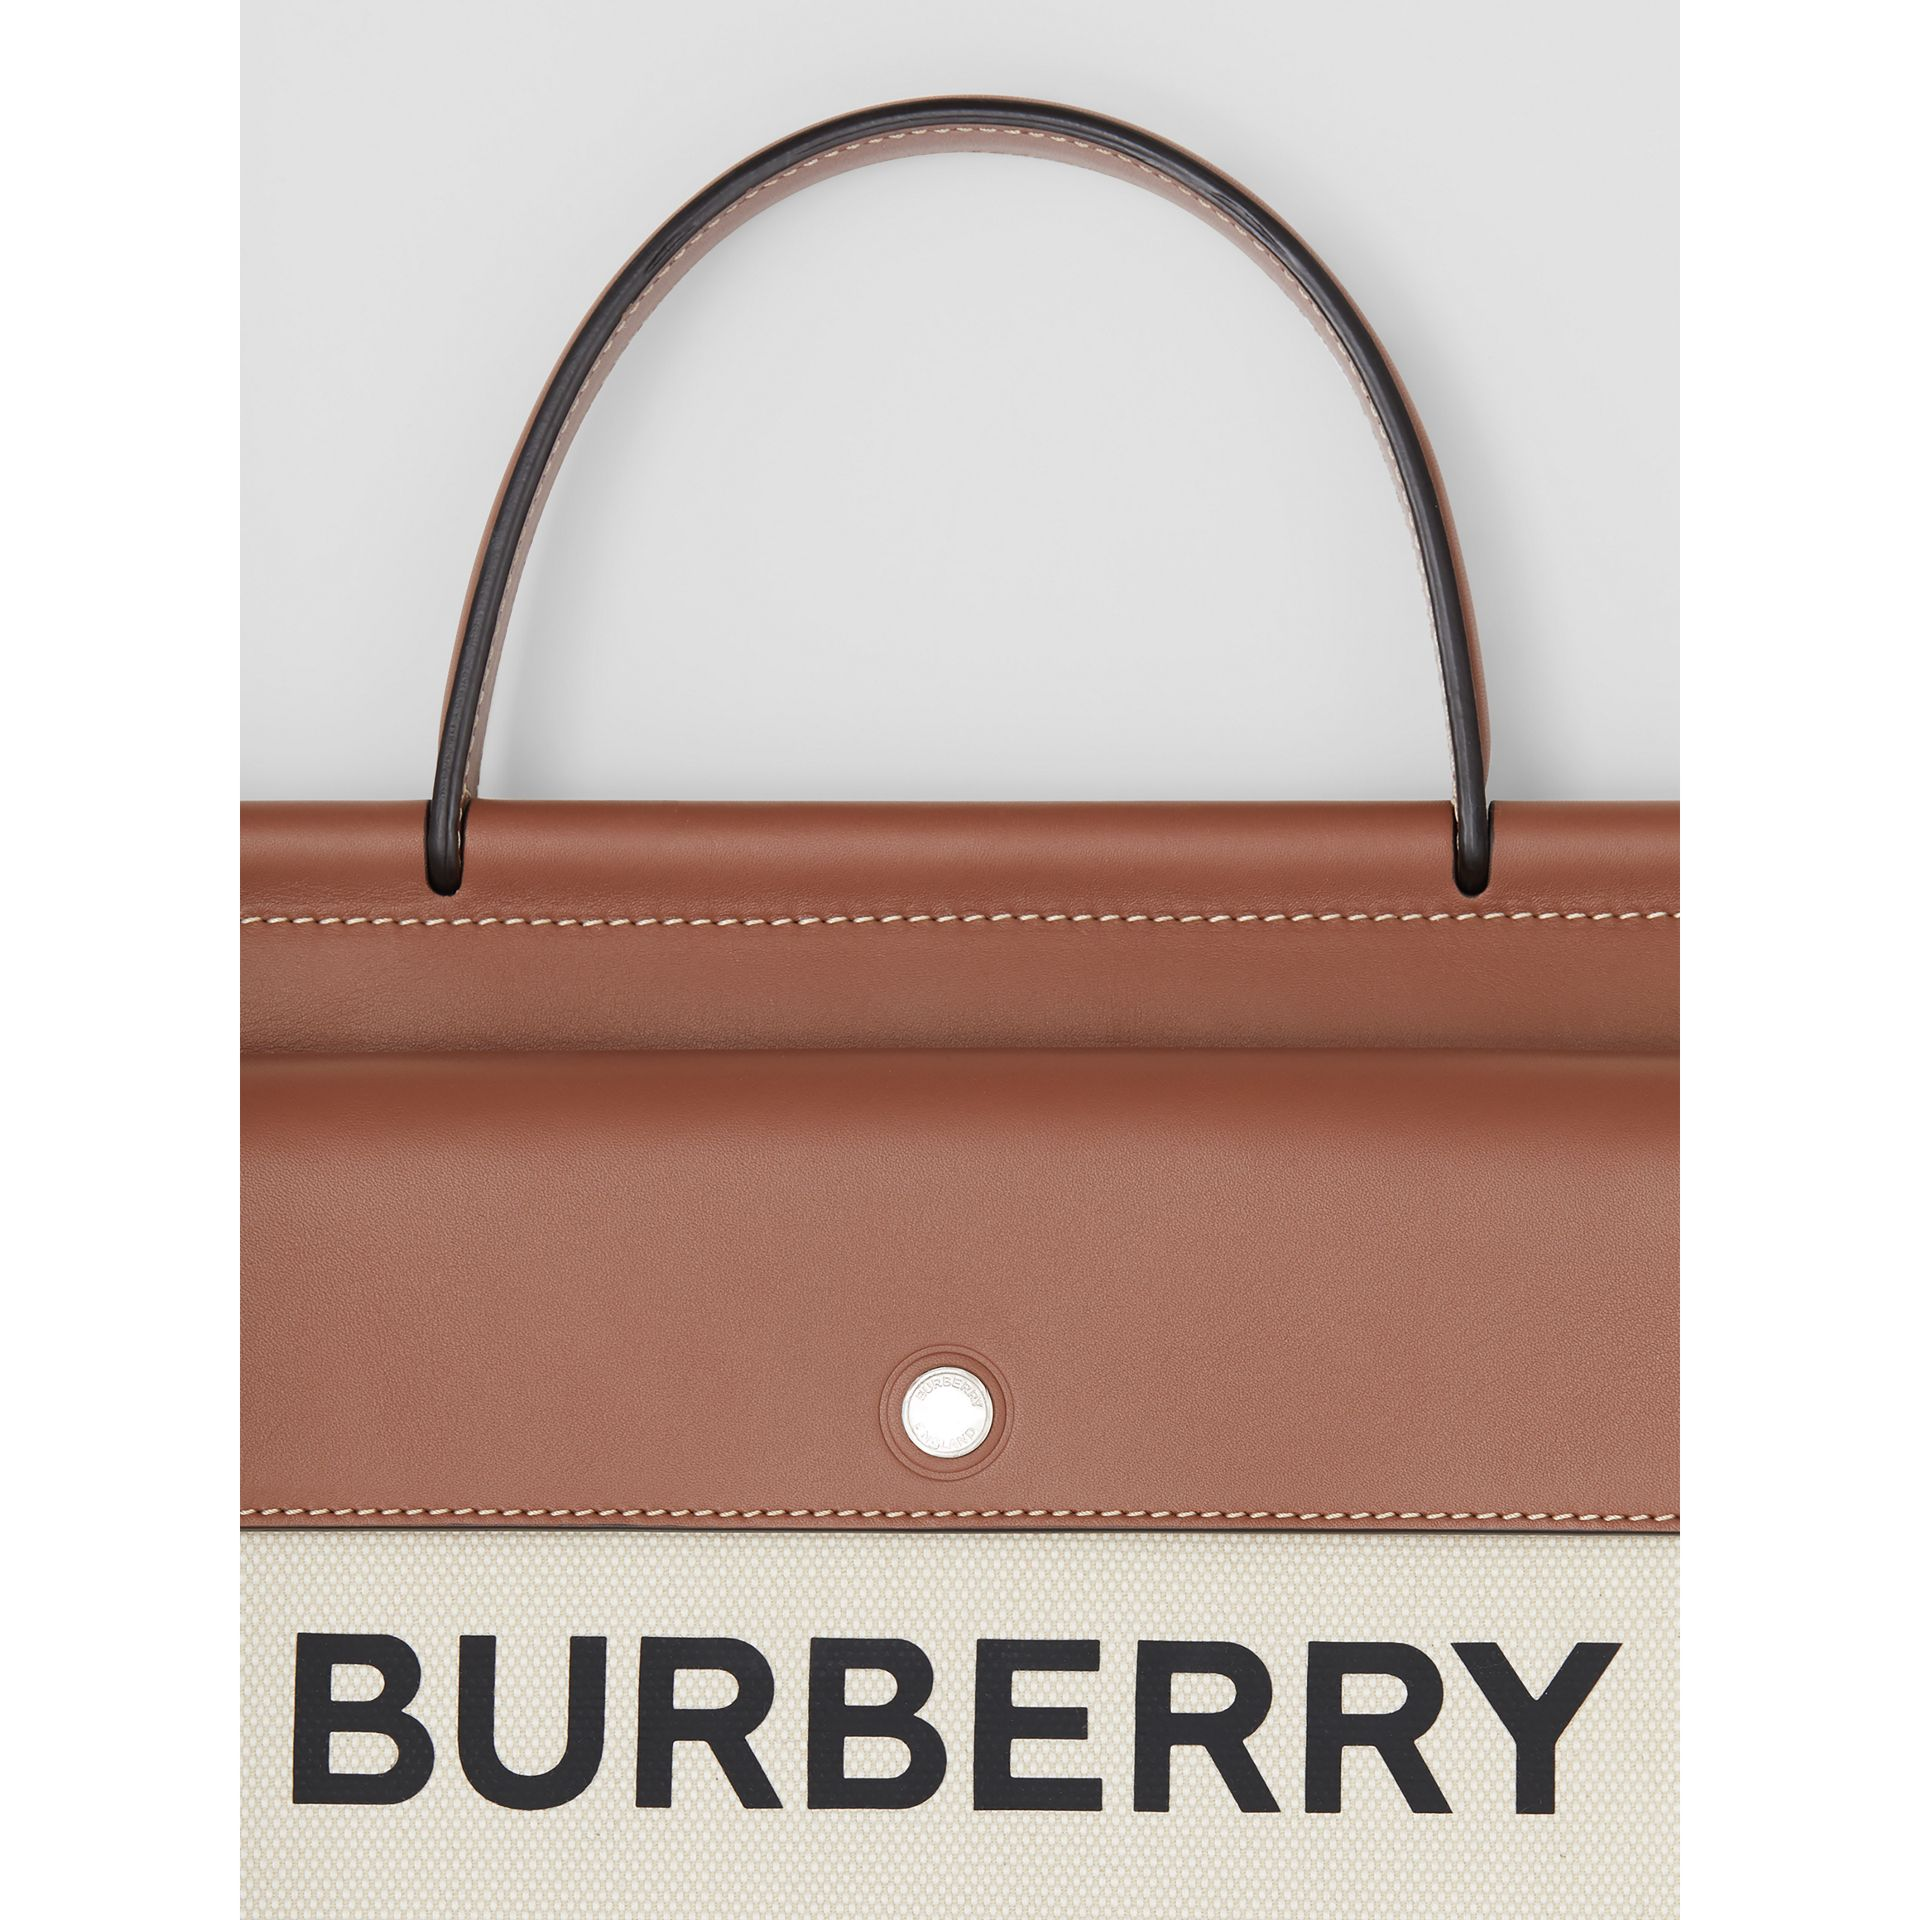 Small Horseferry Print Title Bag with Pocket Detail in Natural/malt Brown - Women | Burberry - gallery image 8